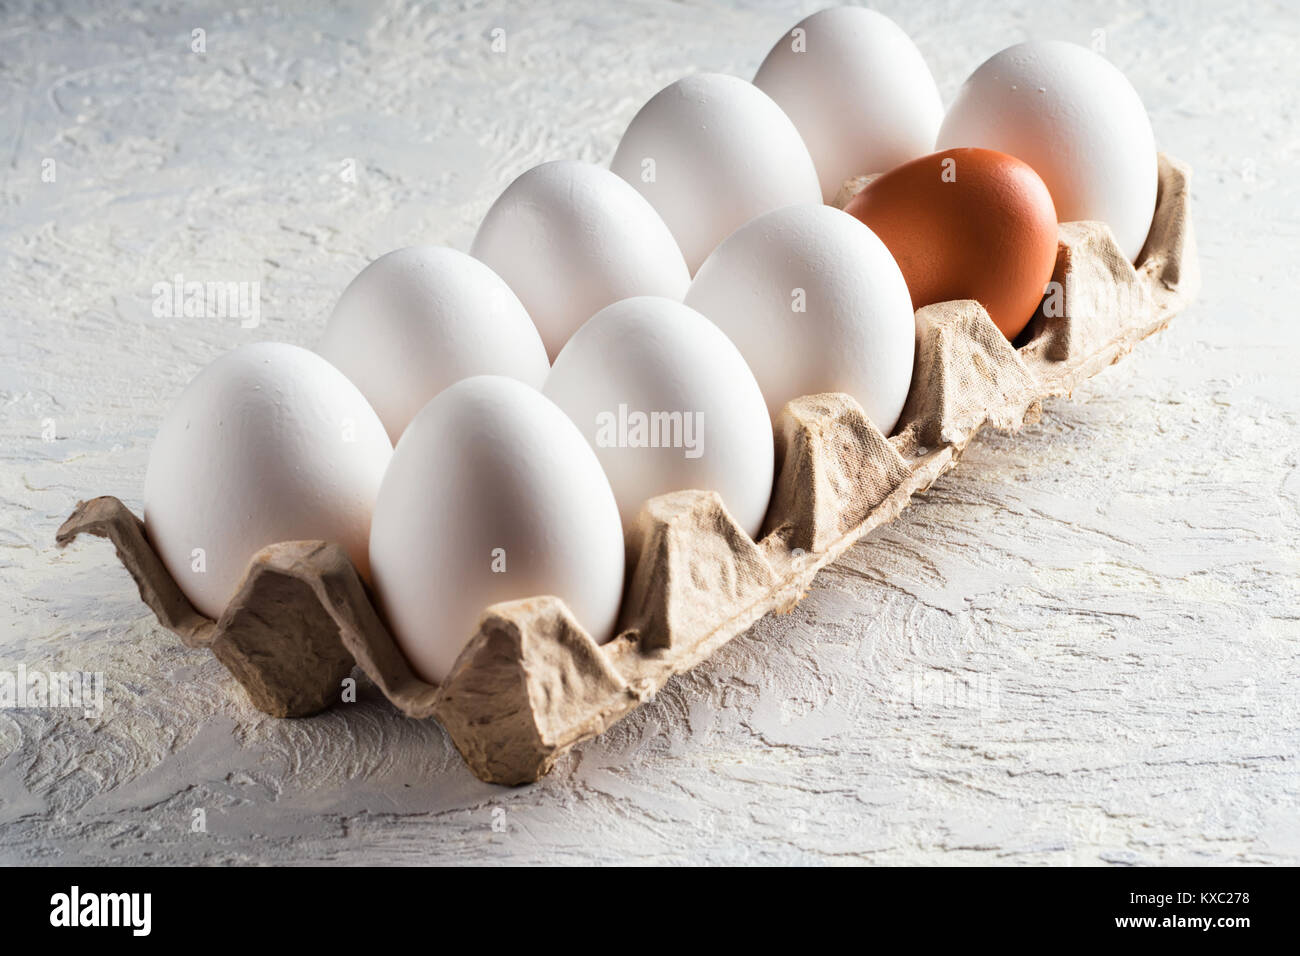 Pack egg white and one beige brown Concept harmful unnatural different other racism  - Stock Image